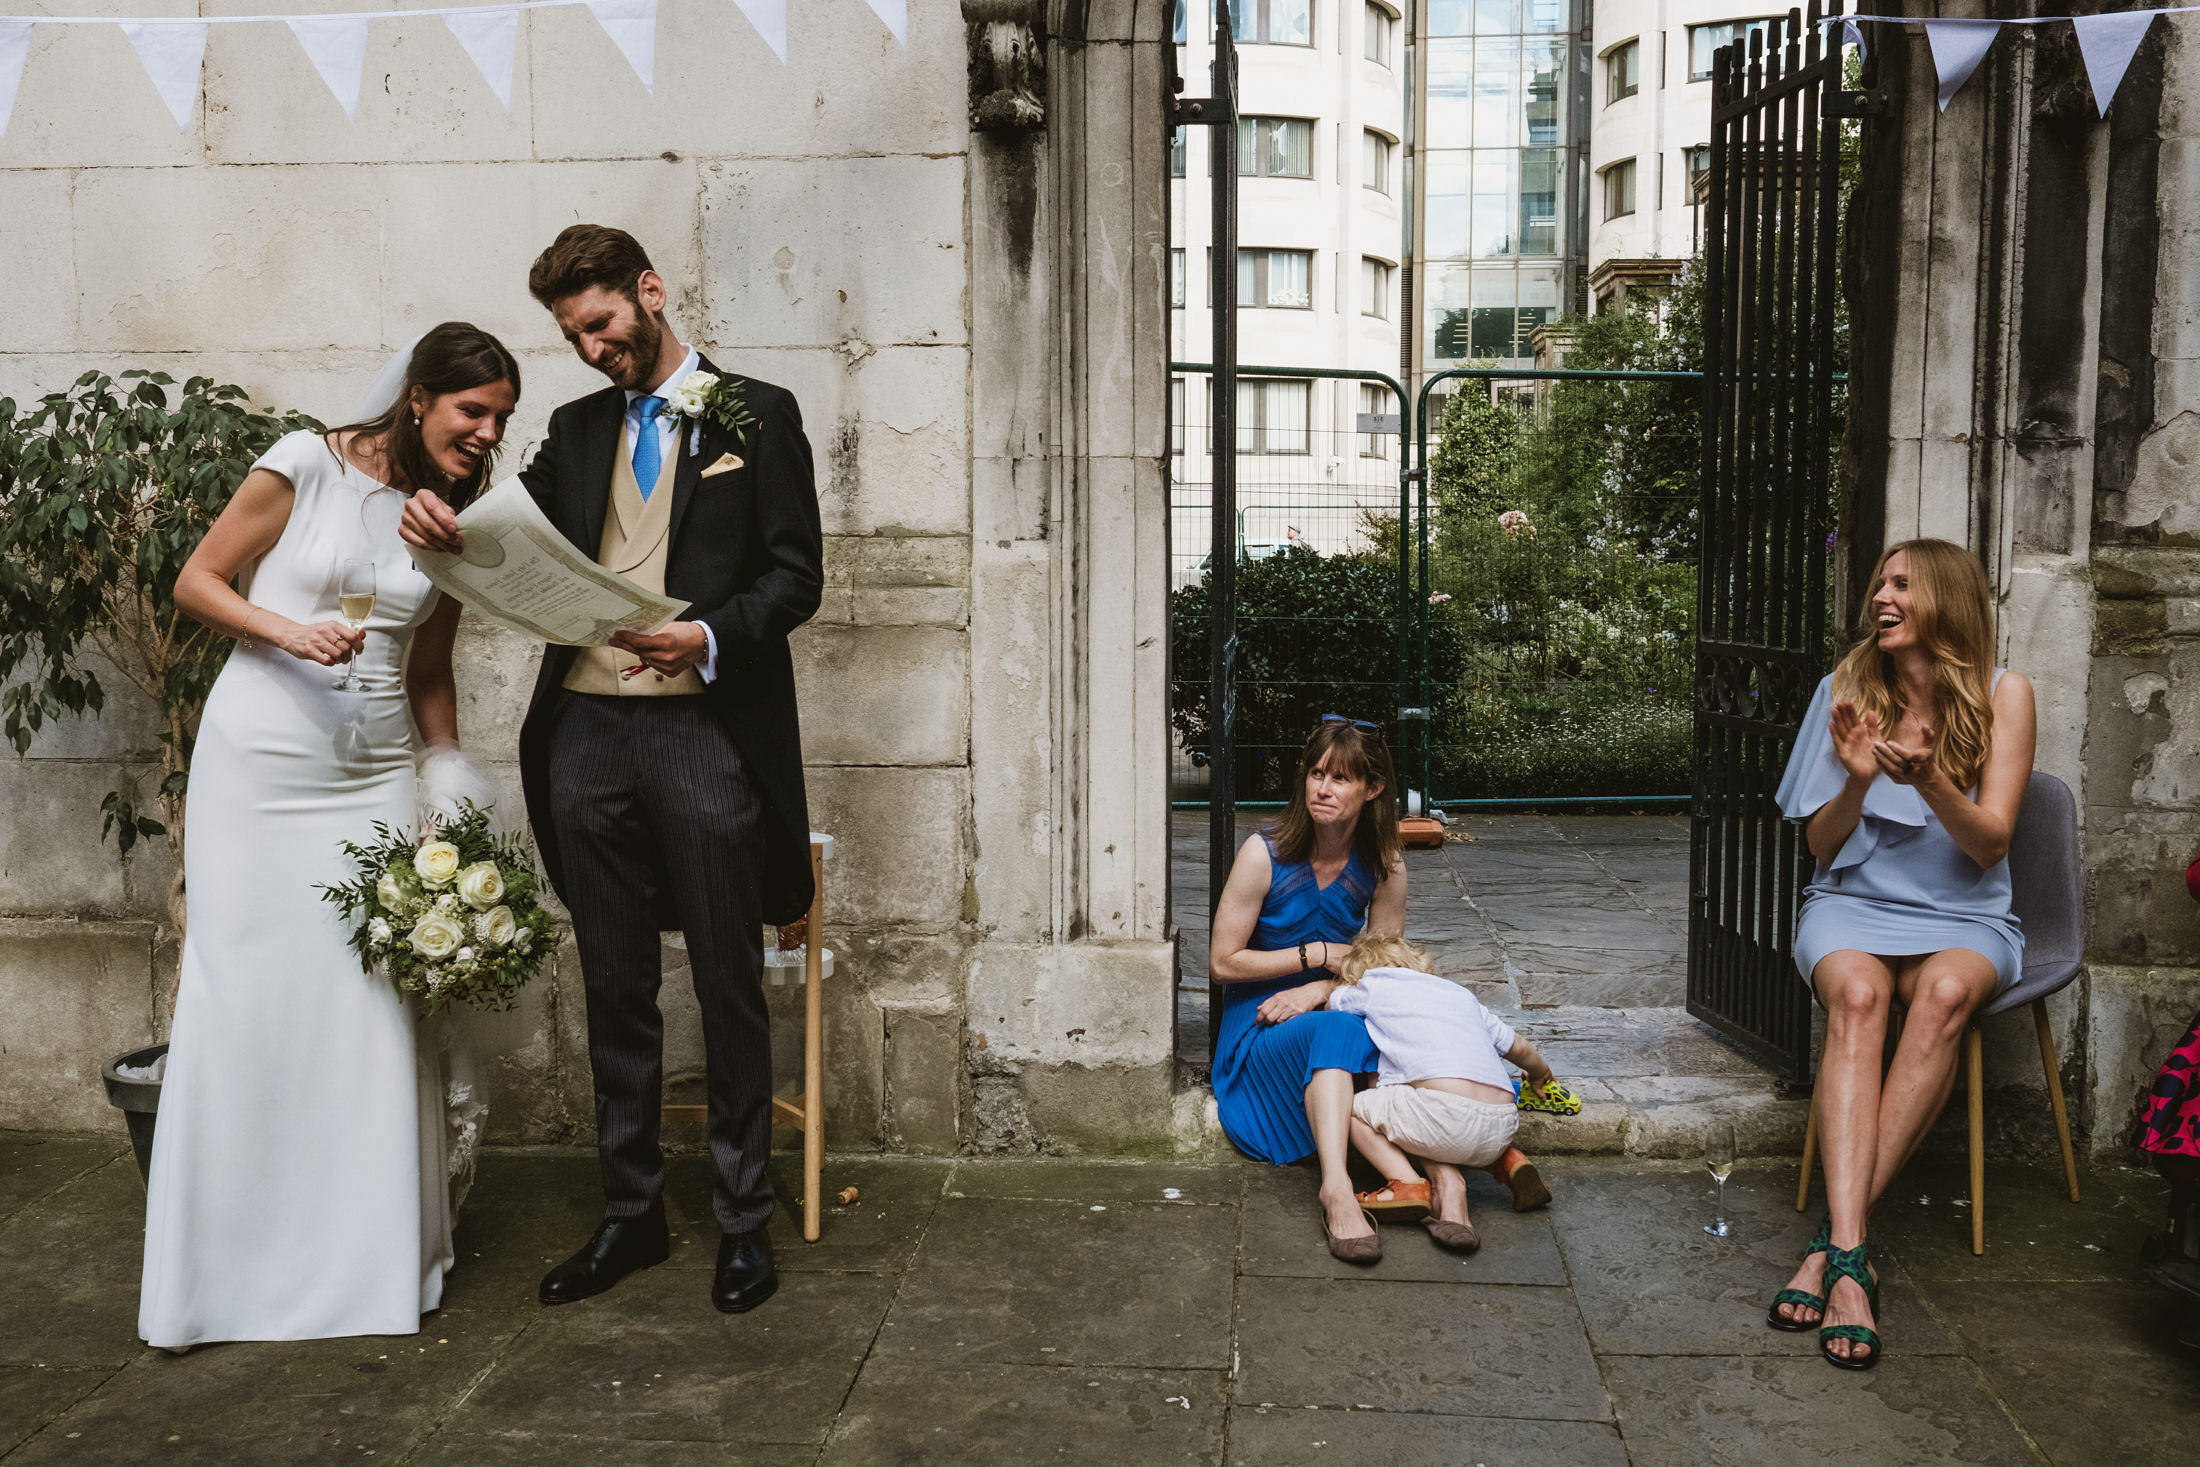 Bride and groom inspect their marriage certificate during their intimate wedding reception in London, photographed by York Place Studios